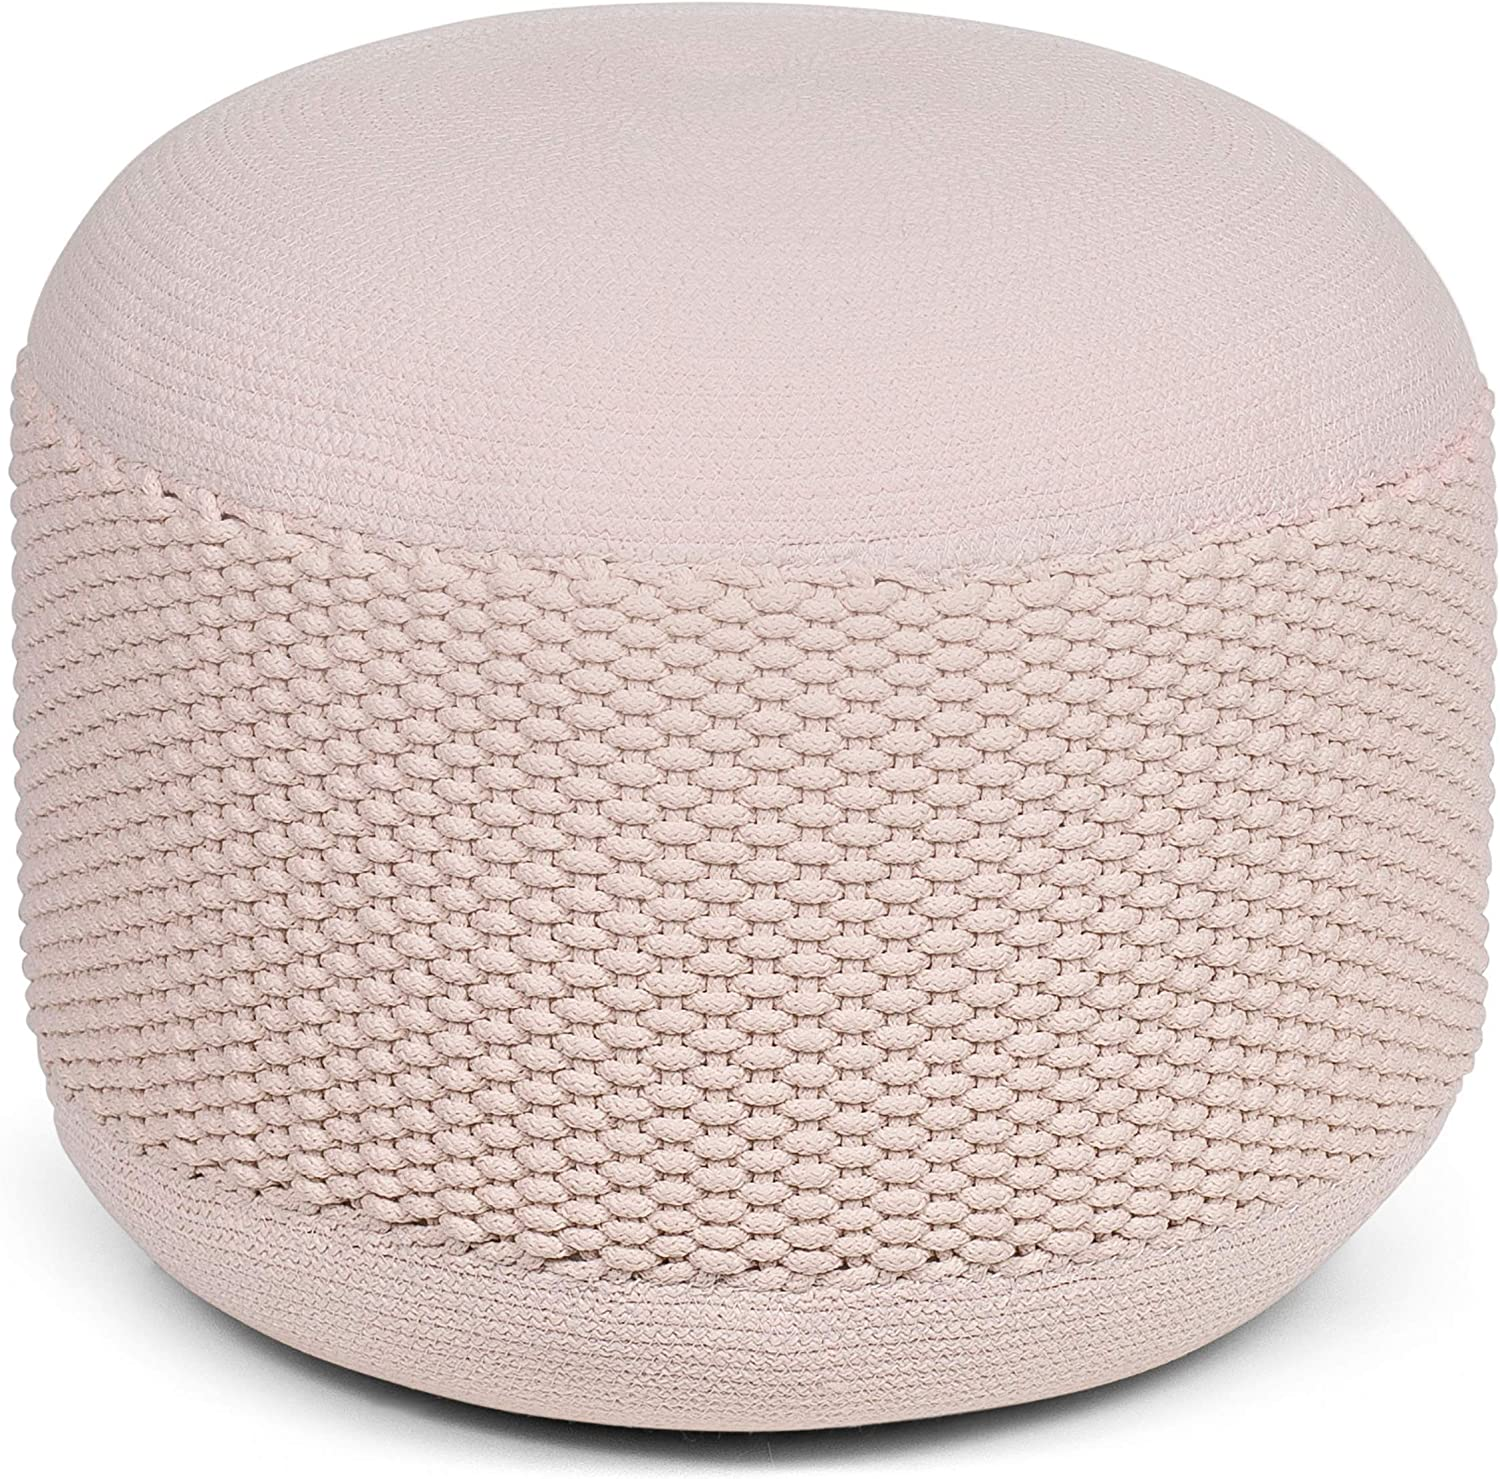 BIRDROCK Popular shop is the lowest price challenge HOME 2021new shipping free Outdoor Pouf Ottoman - Indoor Woven Natural B or